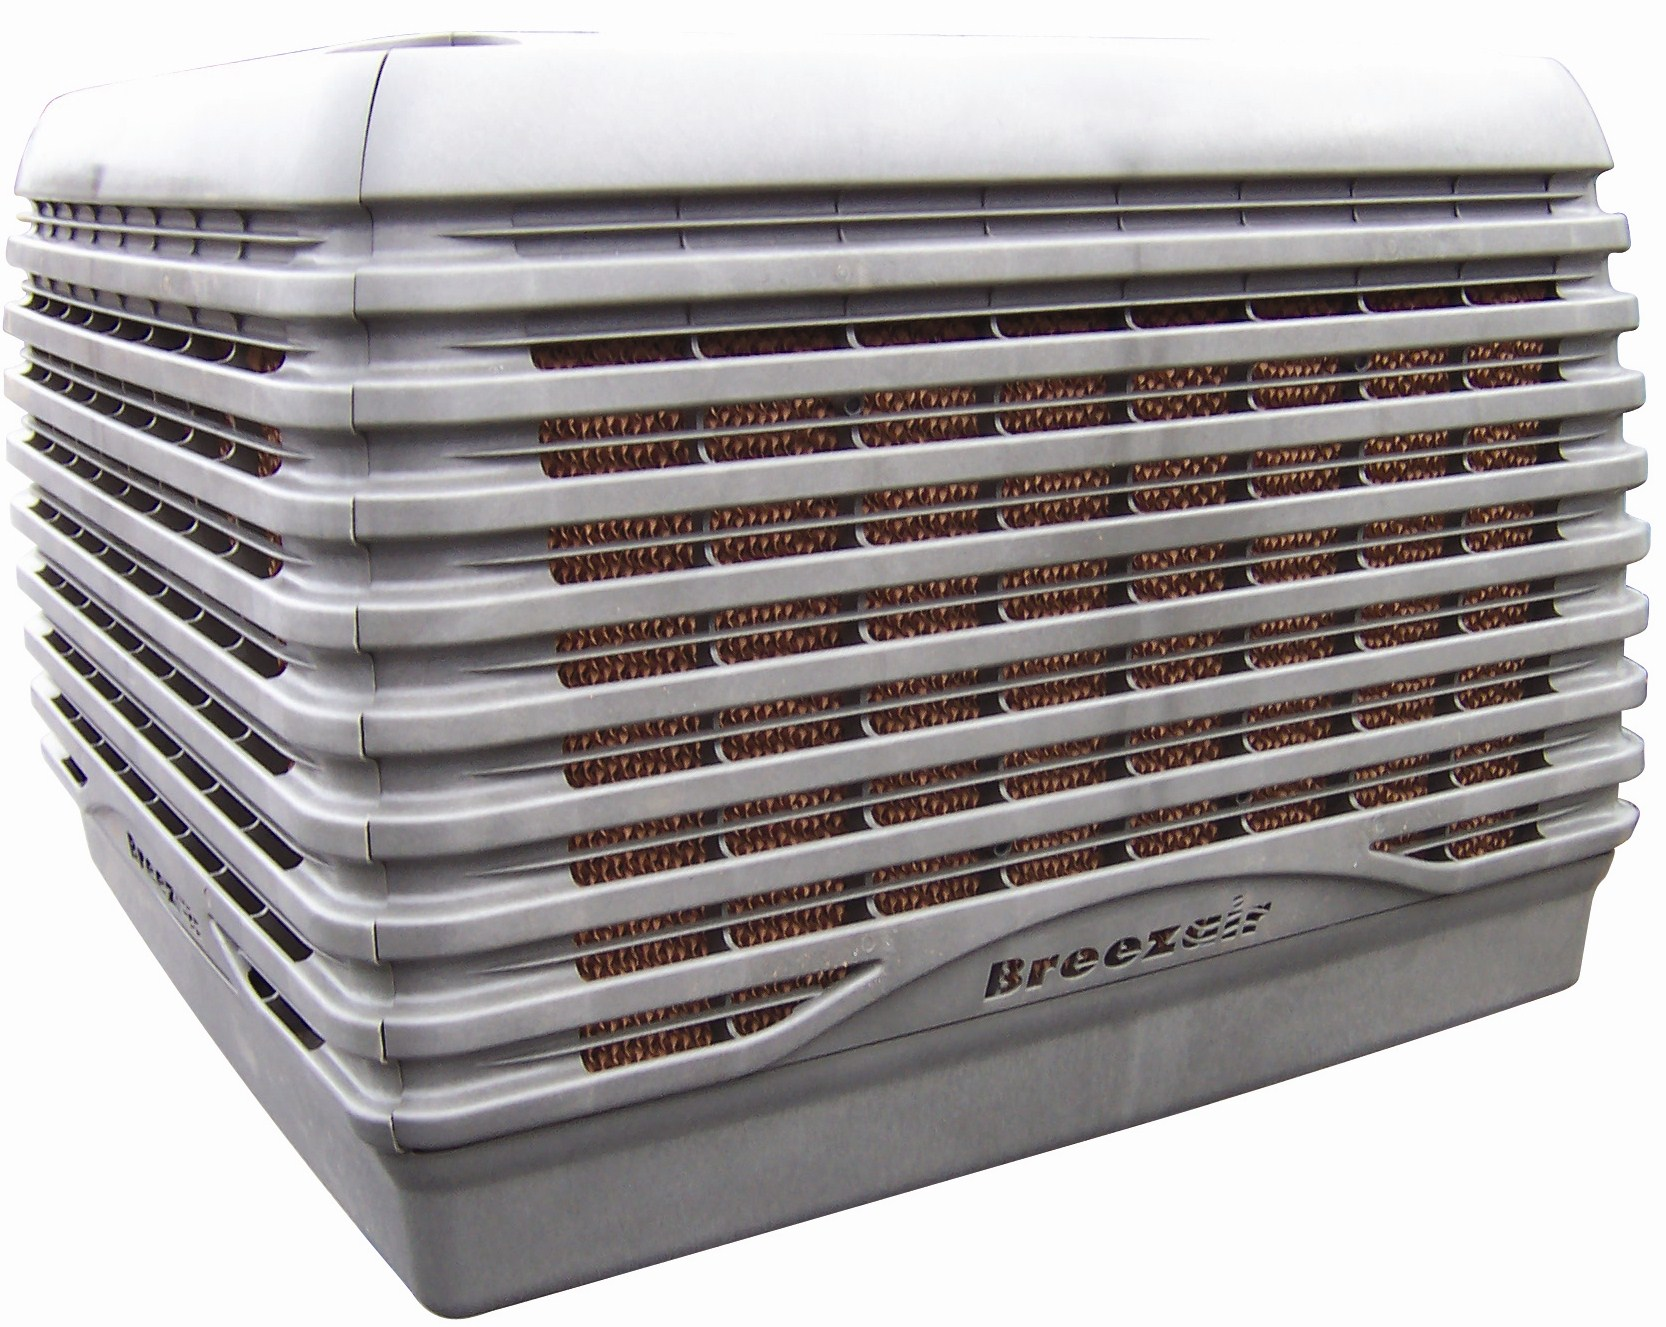 Breezair Tba Series Cooler : Breezair tbs series ansa international